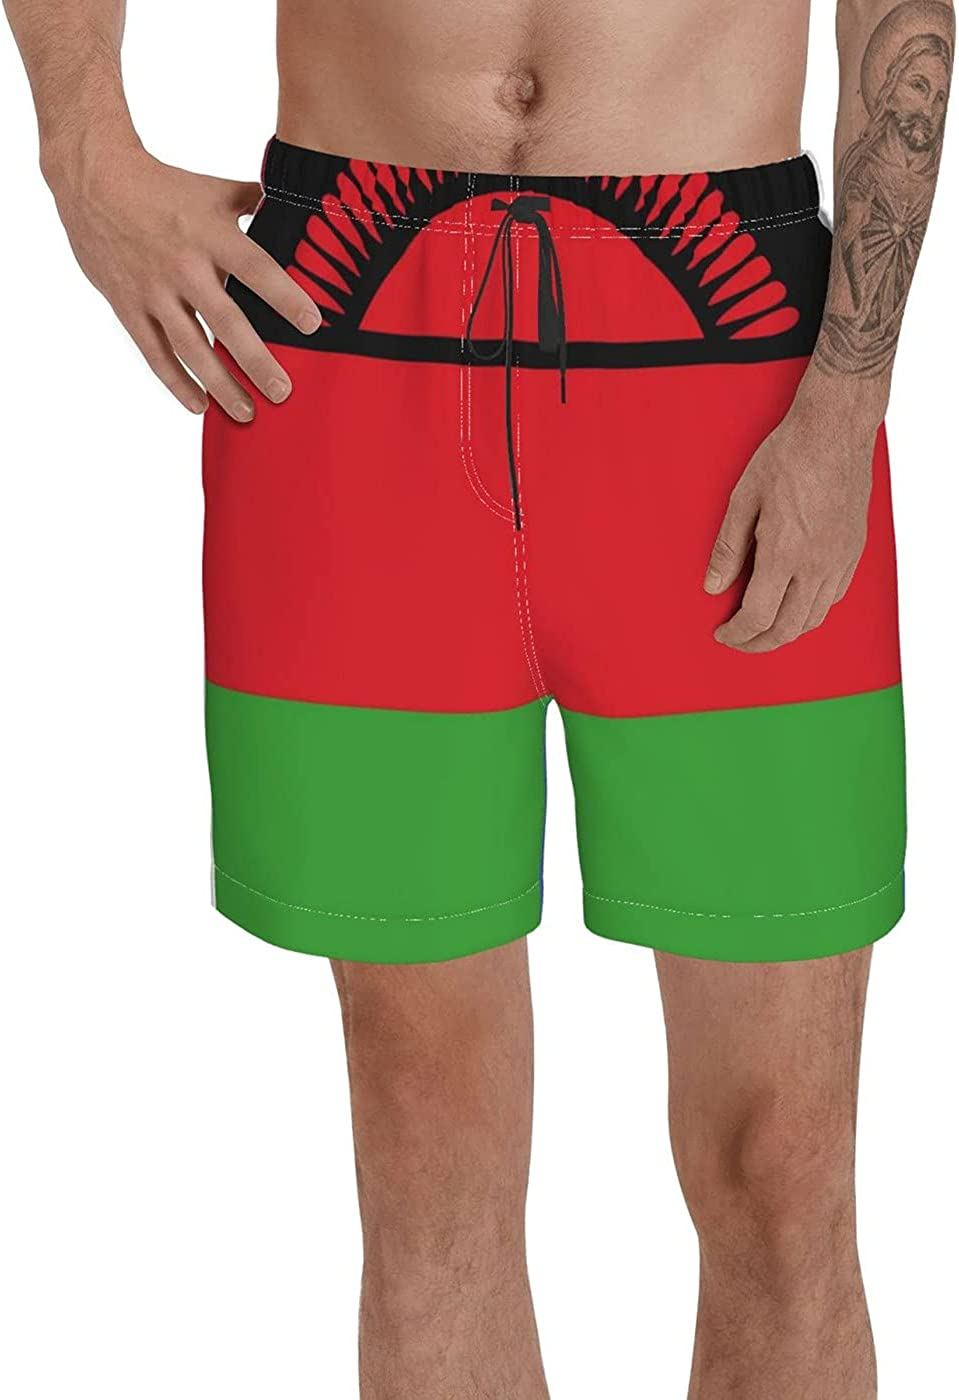 Count Malawi Flag Men's 3D Printed Funny Summer Quick Dry Swim Short Board Shorts with